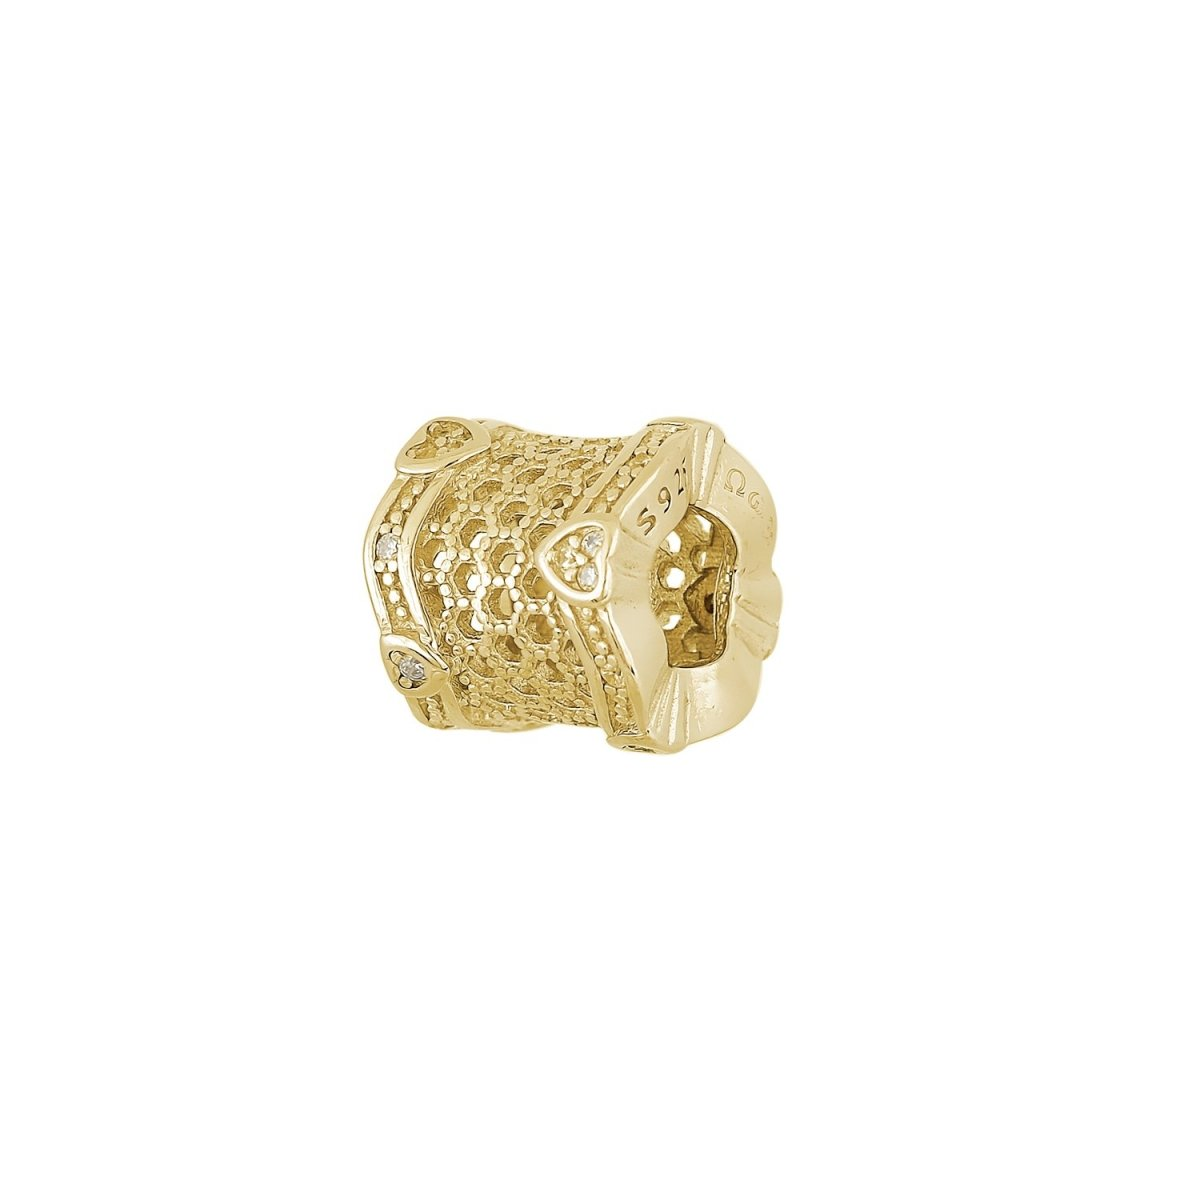 Motif for Bracelet D108G Gold Plated Silver - Goldy Jewelry Store